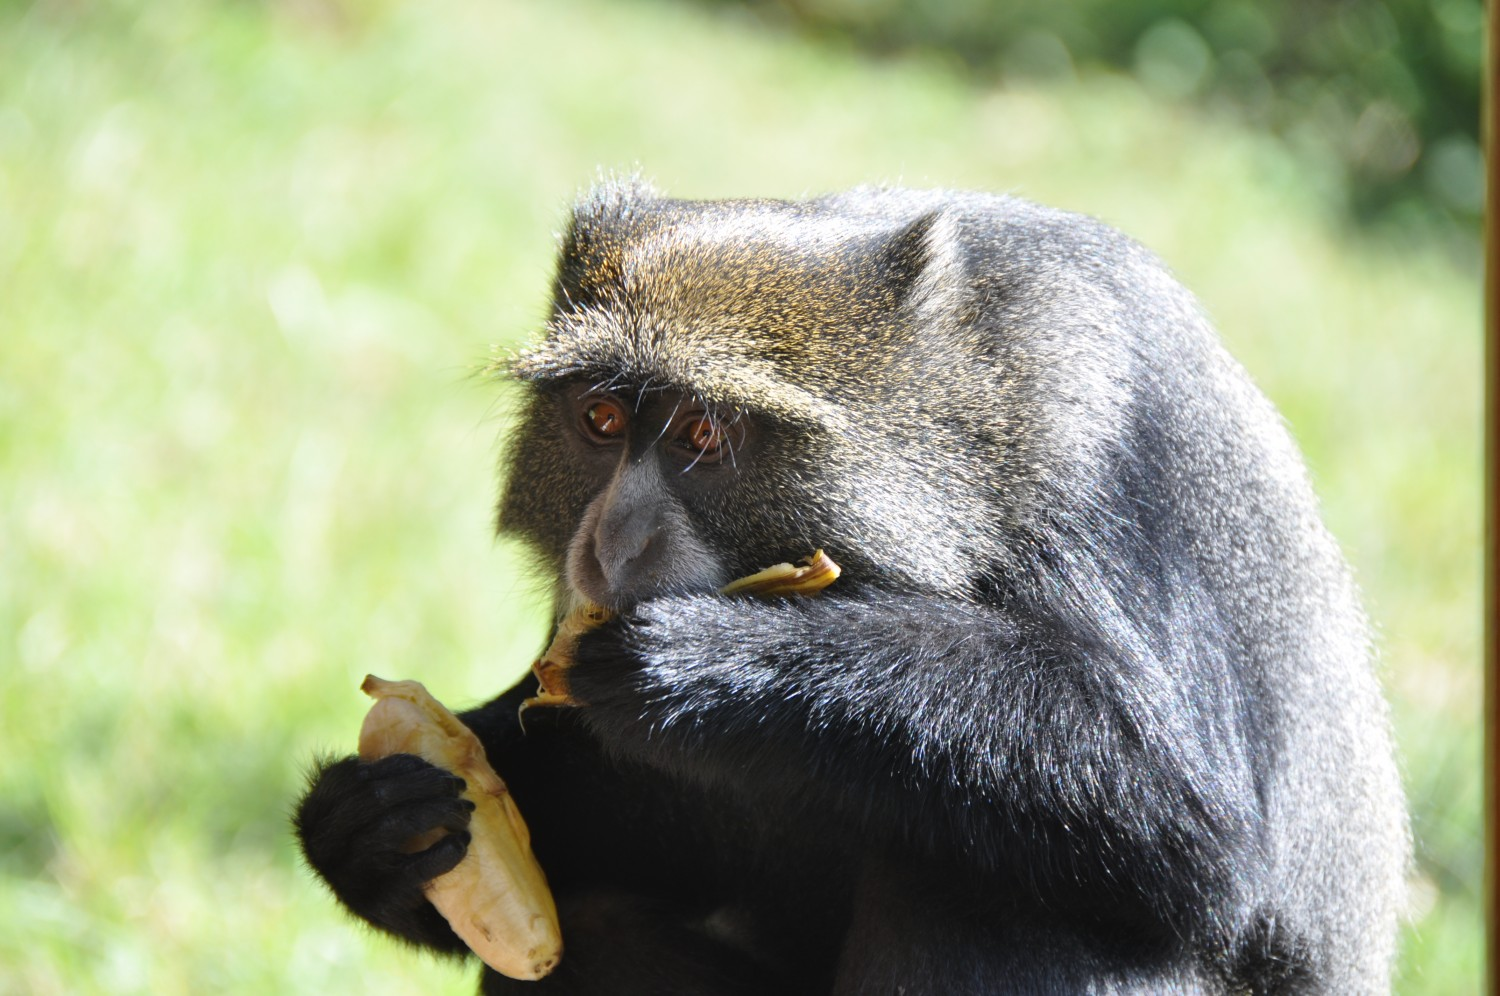 A monkey stealing lunch